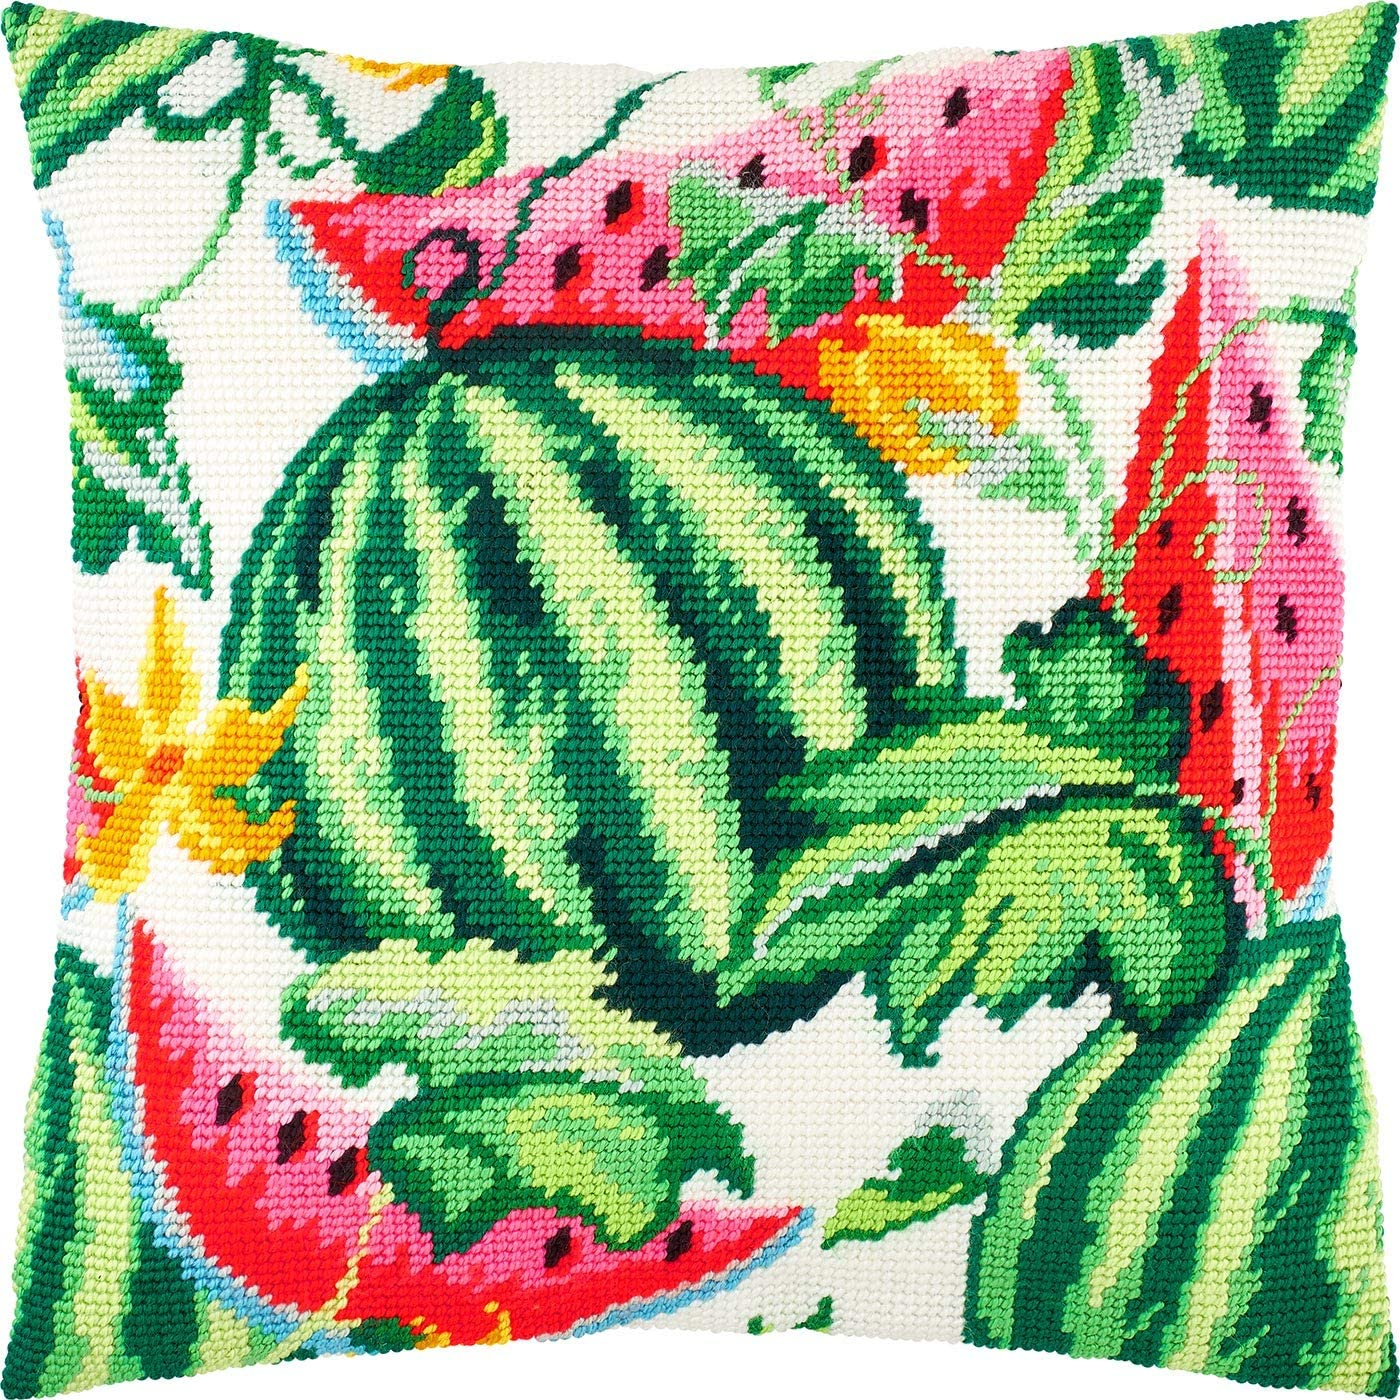 Watermelons Throw Pillow 16/×16 Inches Printed Tapestry Canvas Needlepoint Kit European Quality